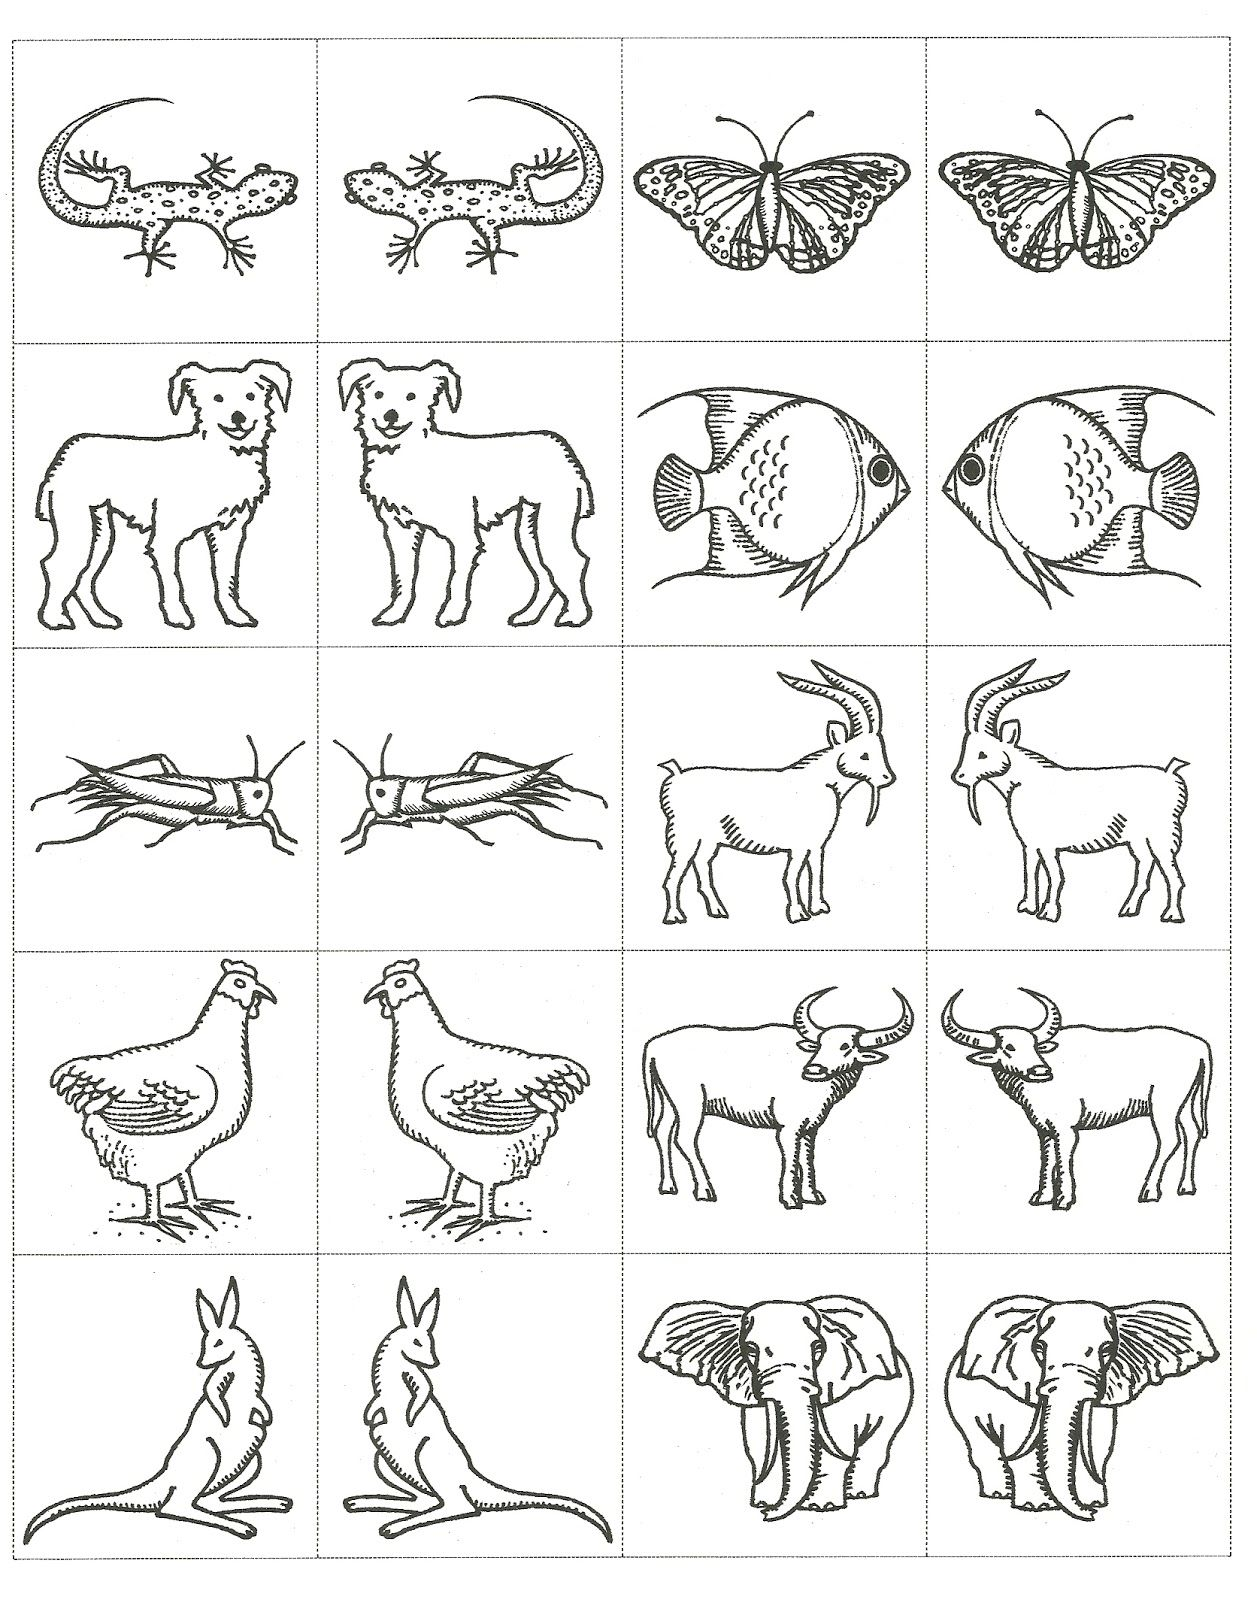 noah's ark animals coloring pages | vbs | pinterest | preschool ... - Noahs Ark Coloring Pages Print